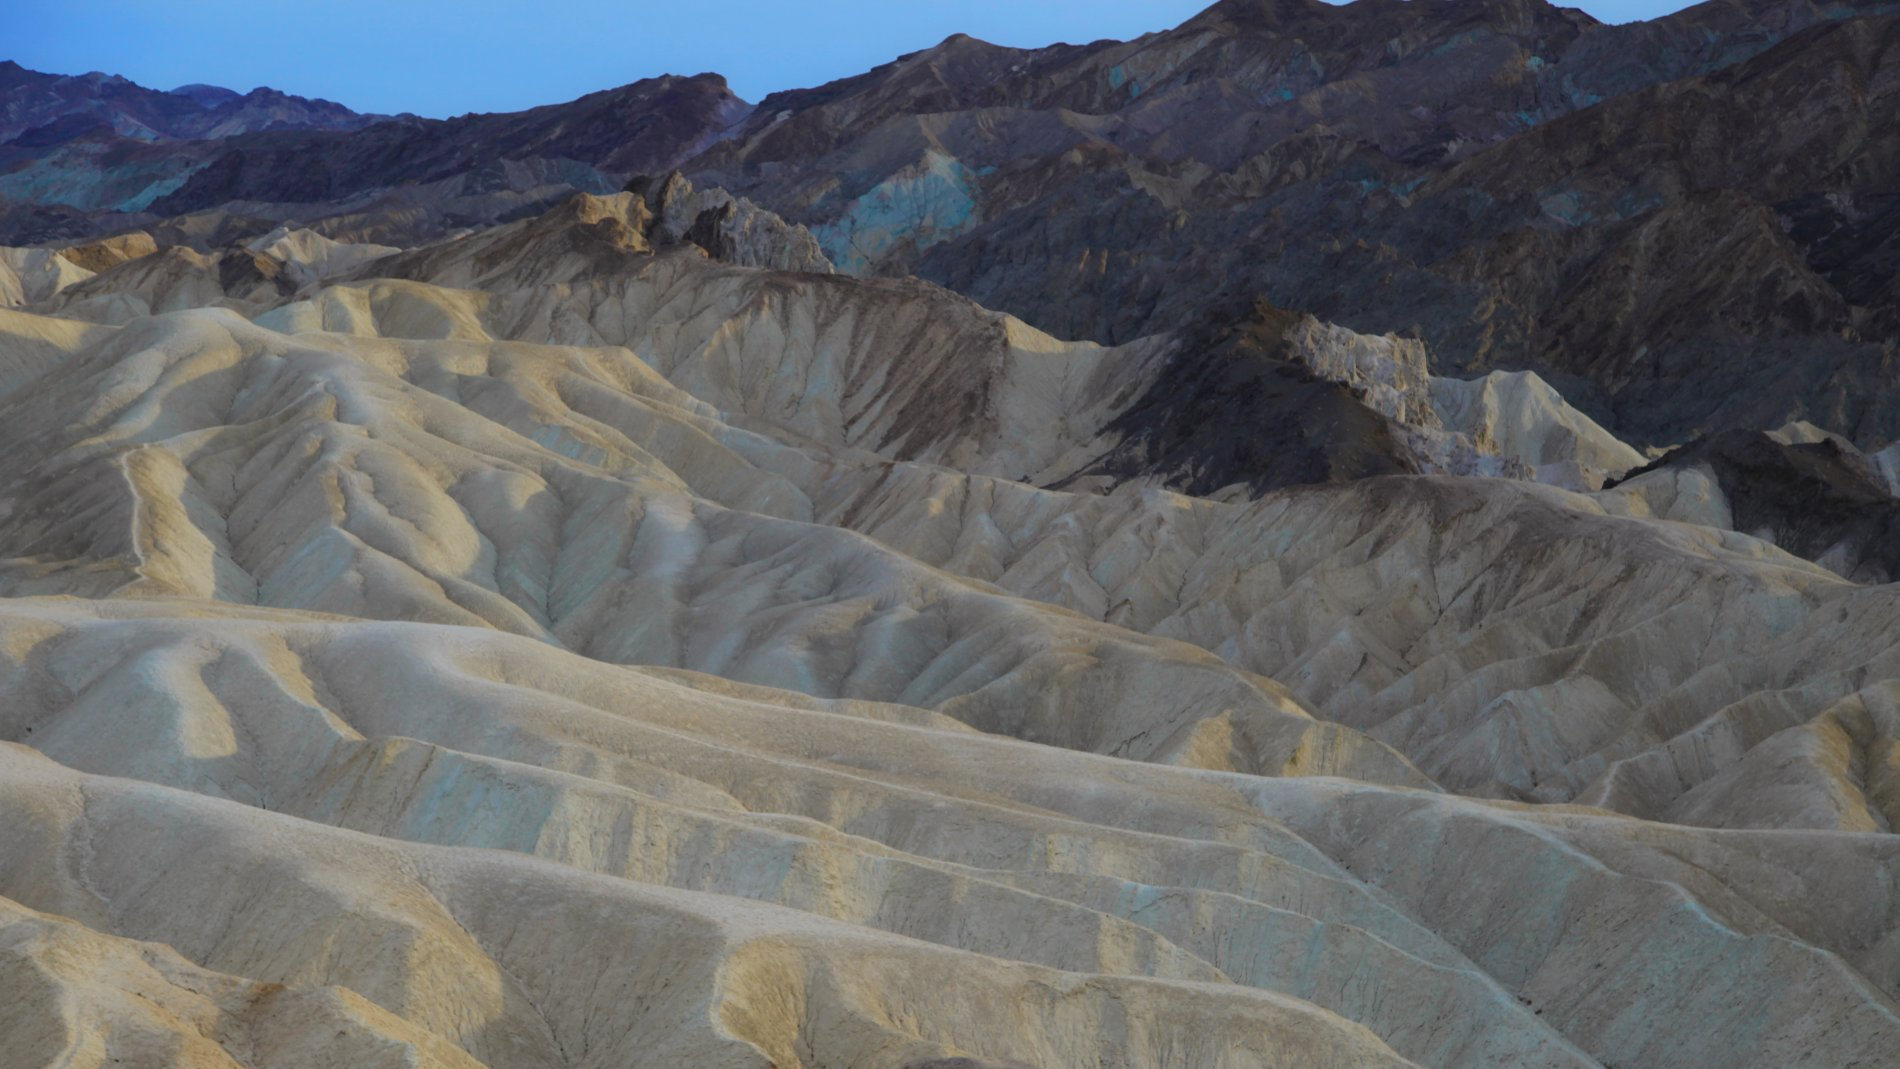 IMG_1115.JPG: Zabriskie Point, Death Valley